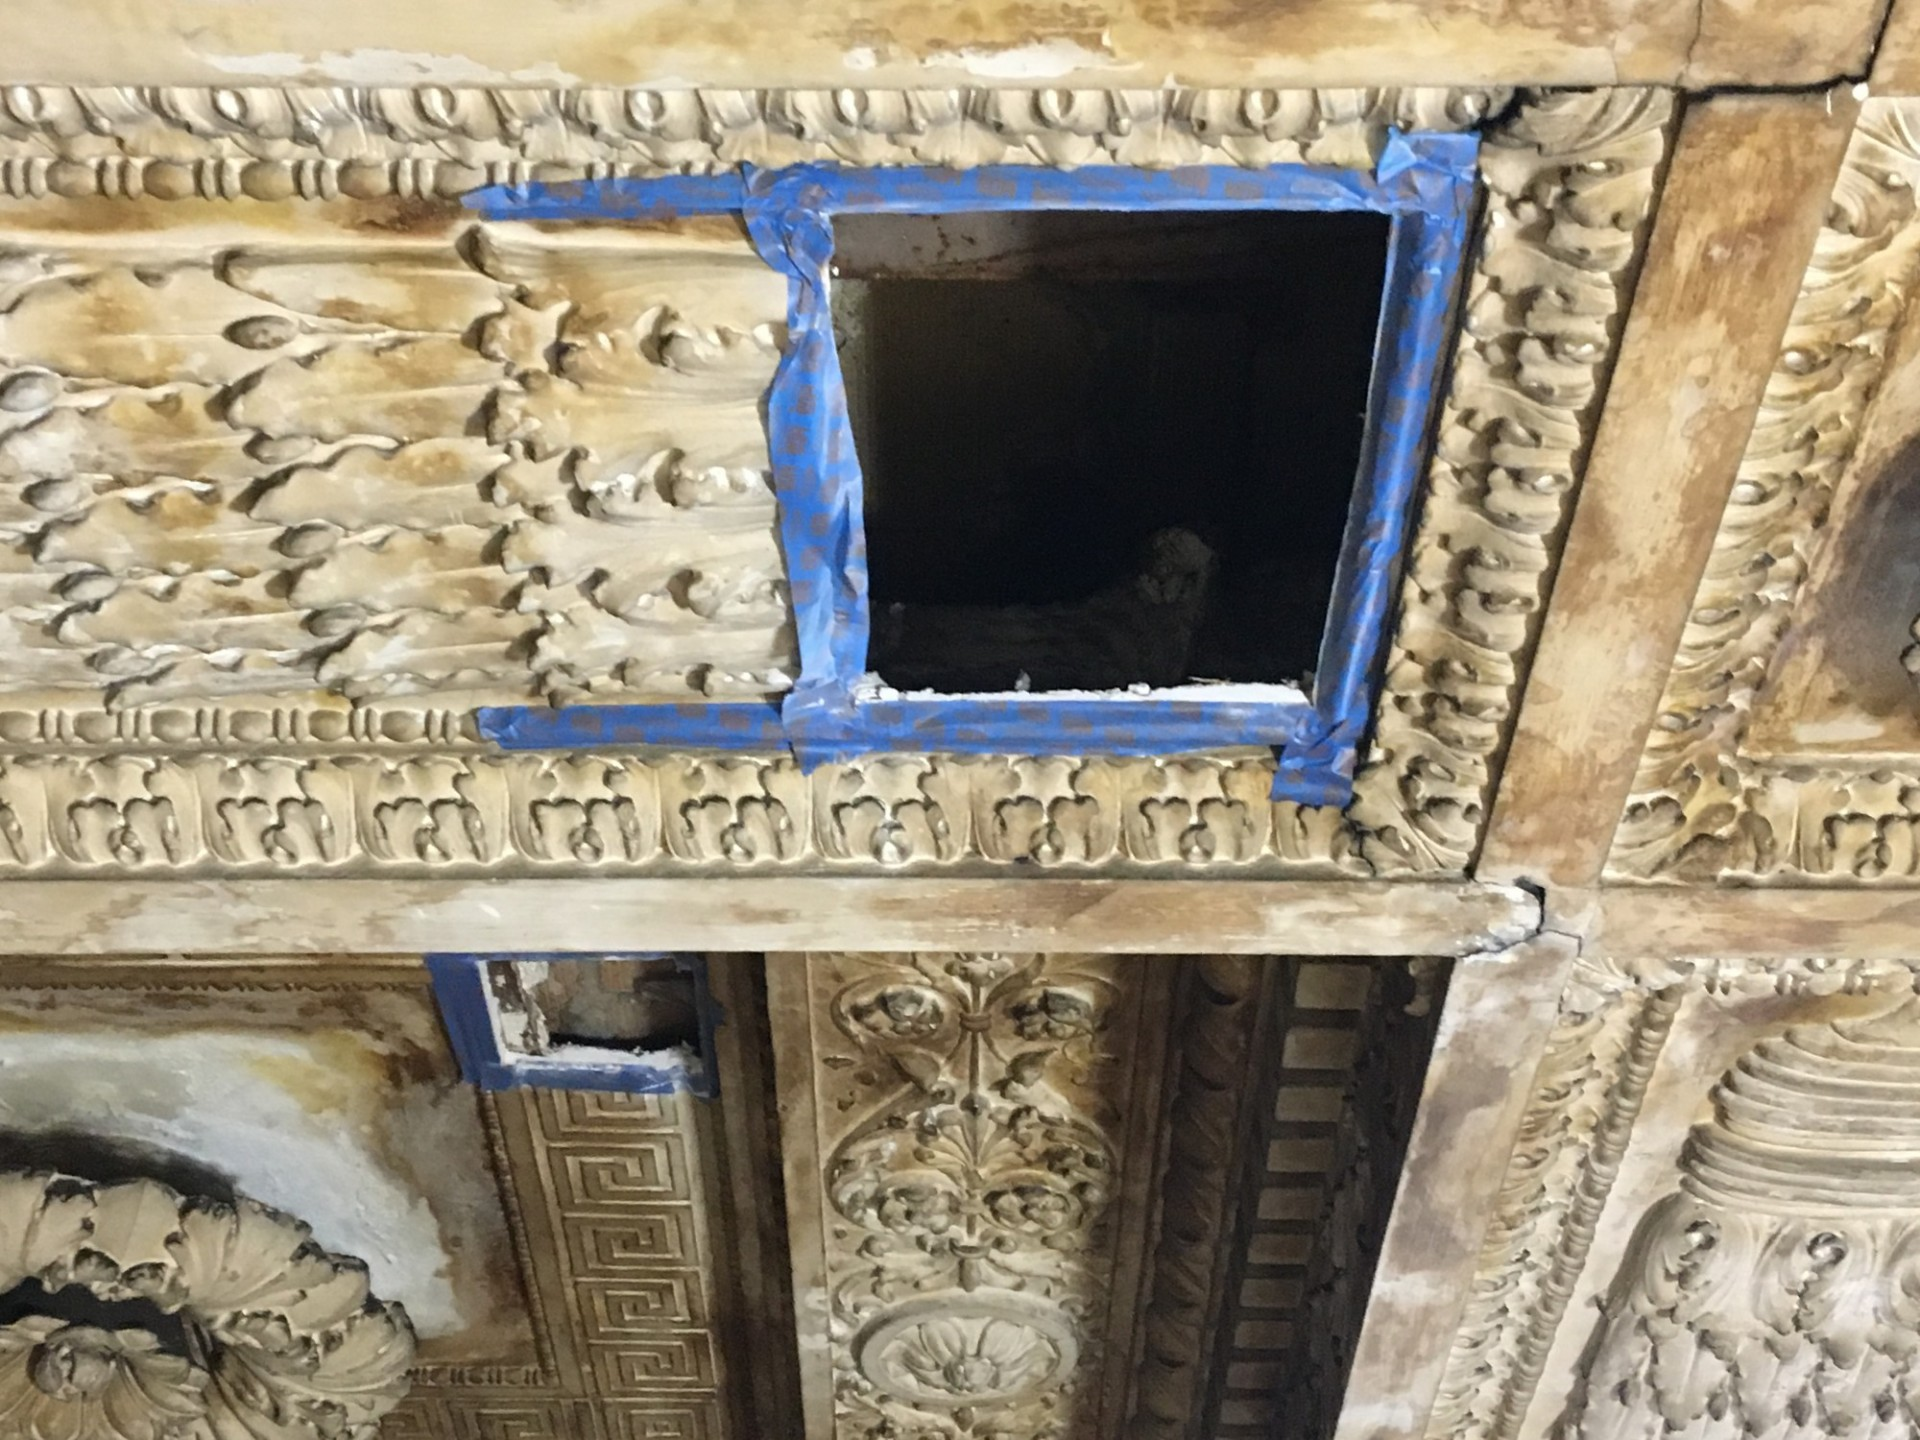 Creating probes to investigate conditions within the plaster ceiling required precise cuts to prevent damage to the ornate ceiling.